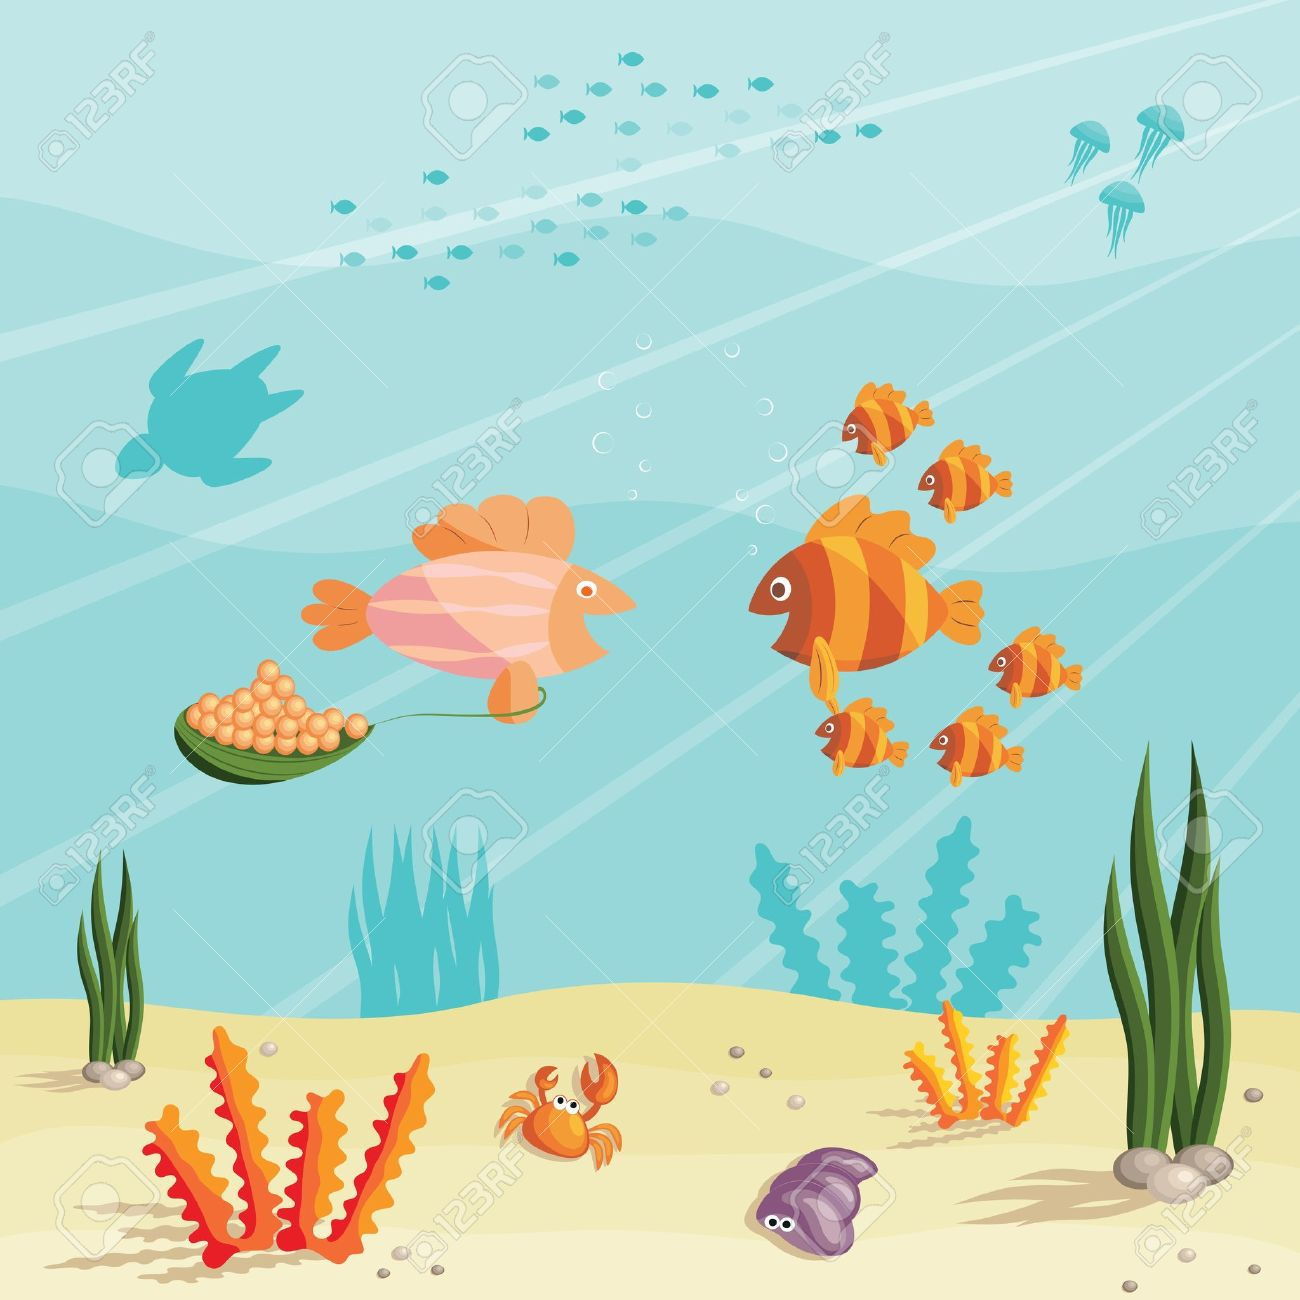 illustration of an underwater ocean scene with small cartoon rh 123rf com Cartoon Ocean Floor cartoon ocean scenery